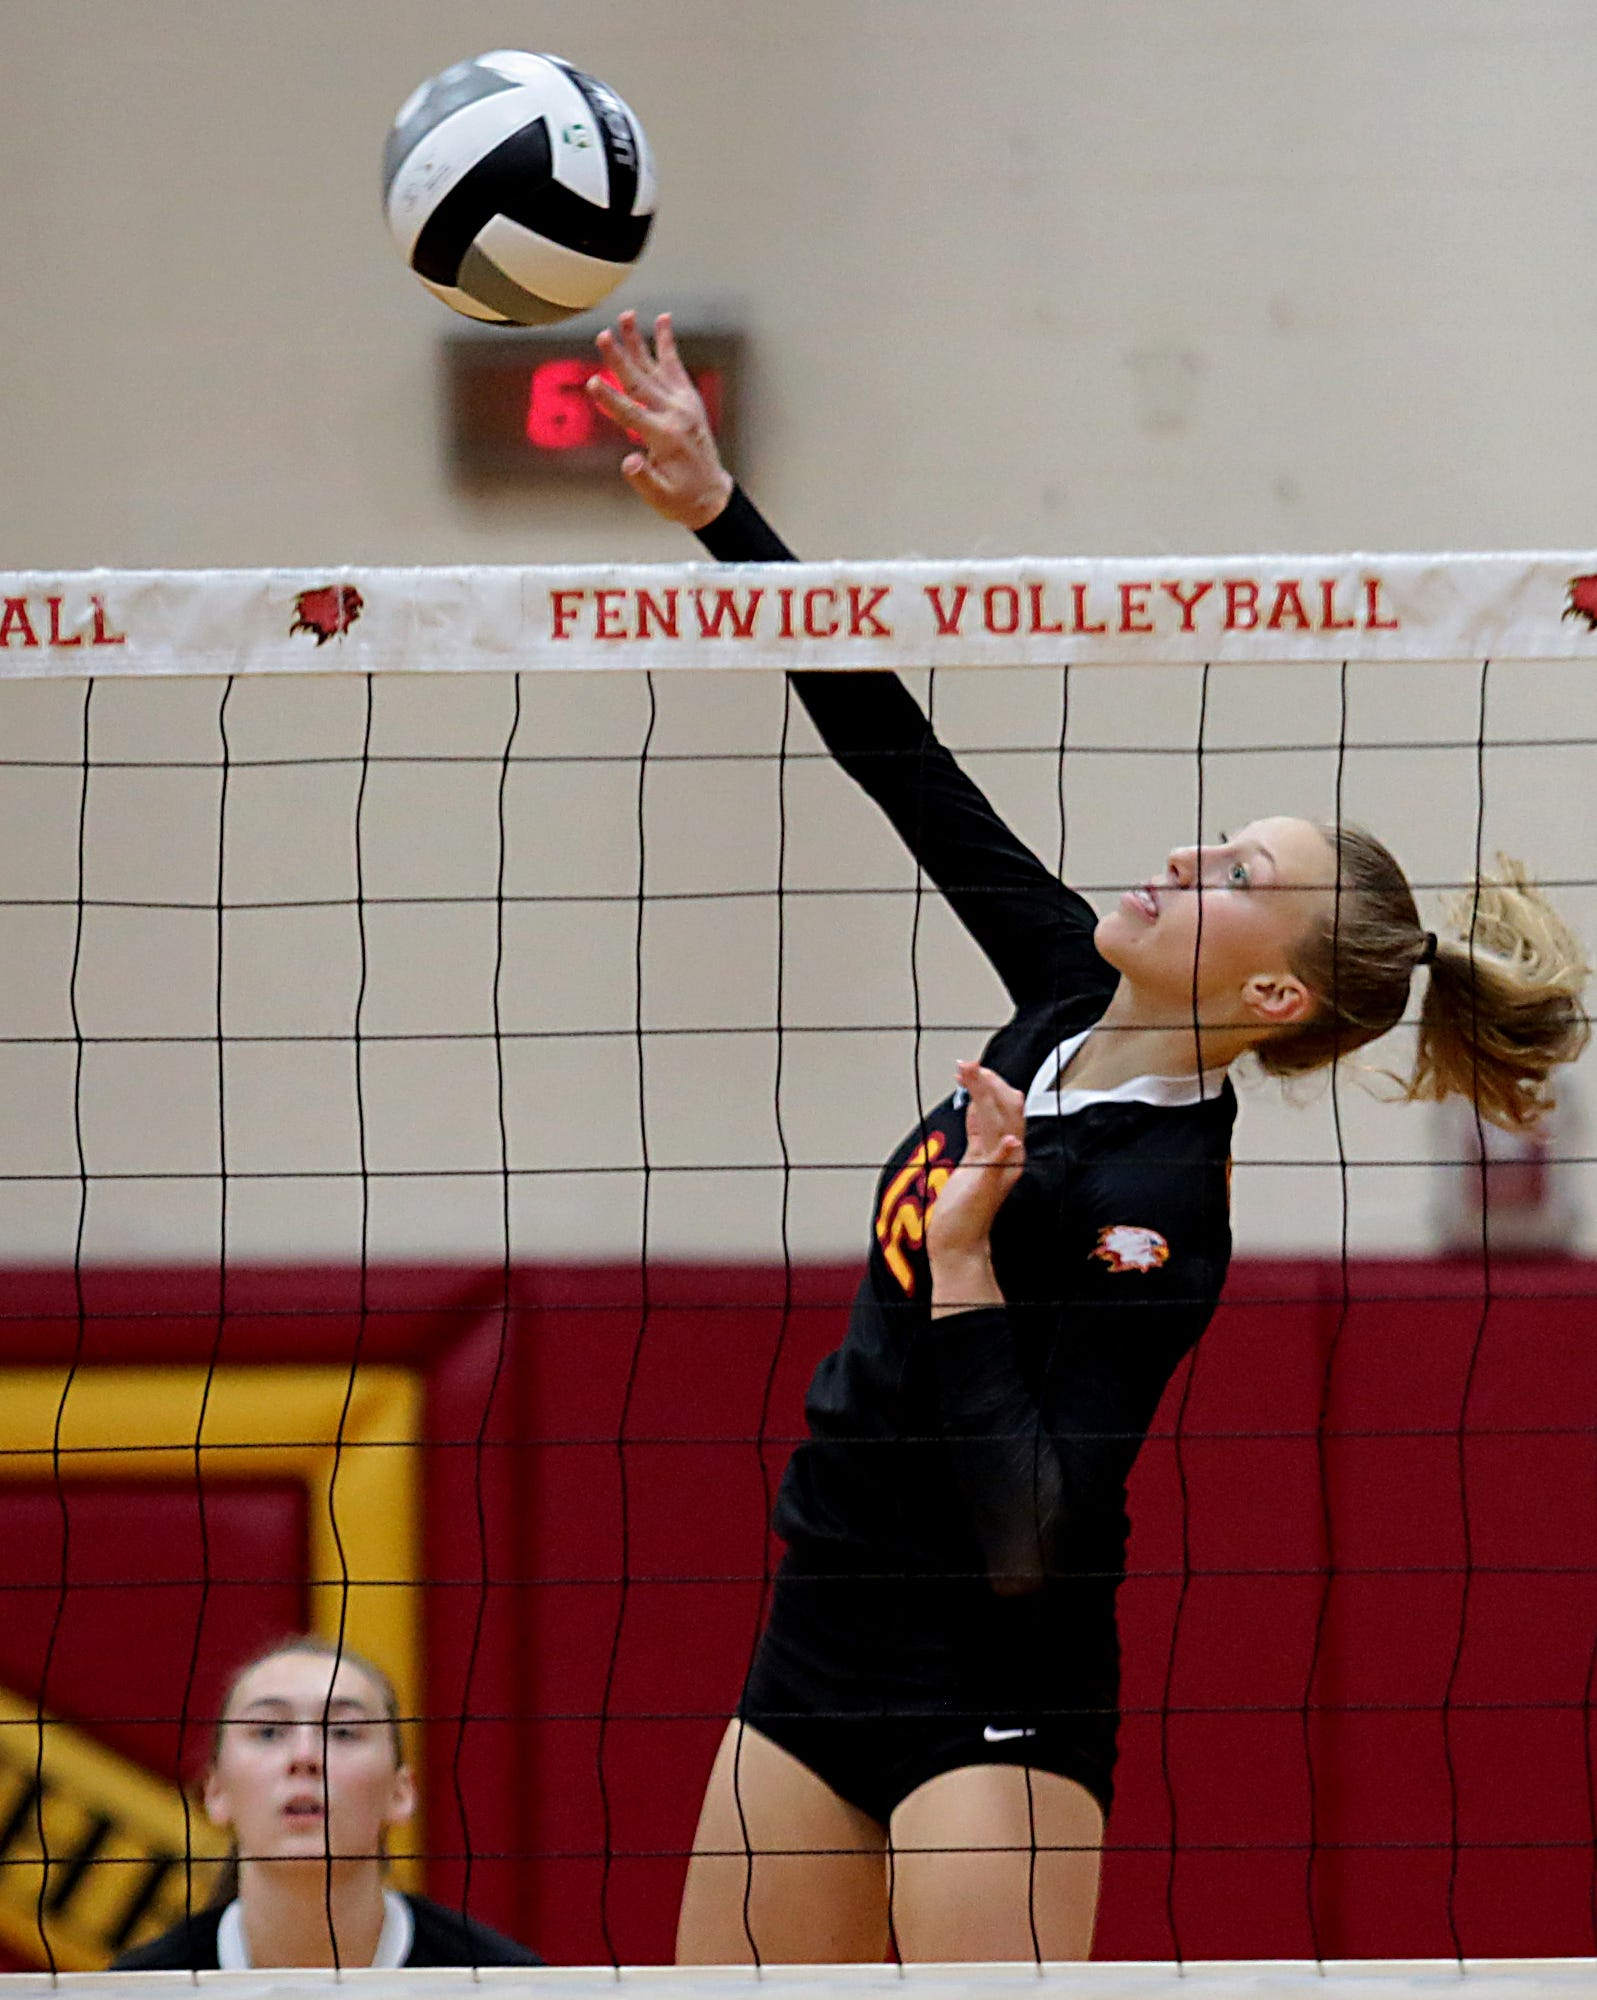 Kate Hafer, from Bishop Fenwick, returns a volley to Kettering Alter during their volleyball game at Fenwick in Middletown Thursday, Oct. 3, 2019. Fenwick won, 3-0.